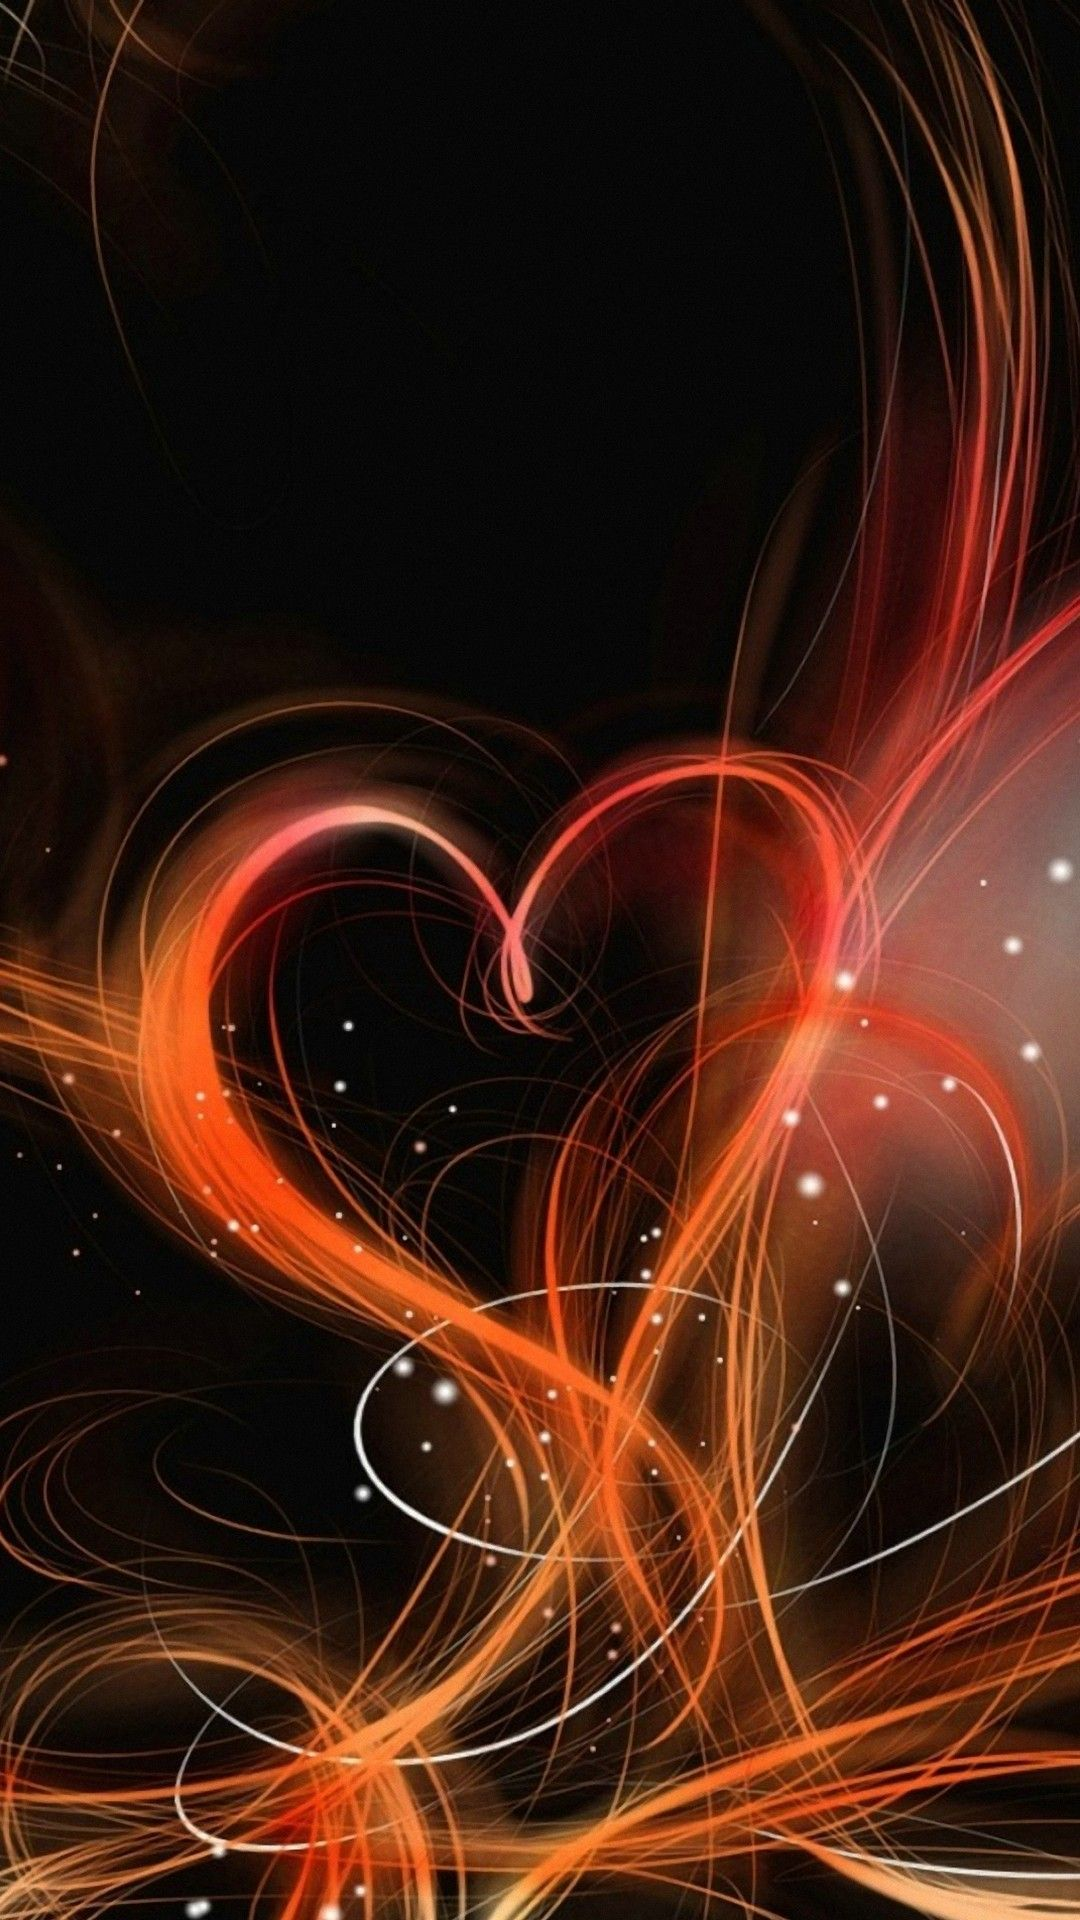 2018 Wallpaper Hd Android Iphone Wallpaper Abstract Love Android